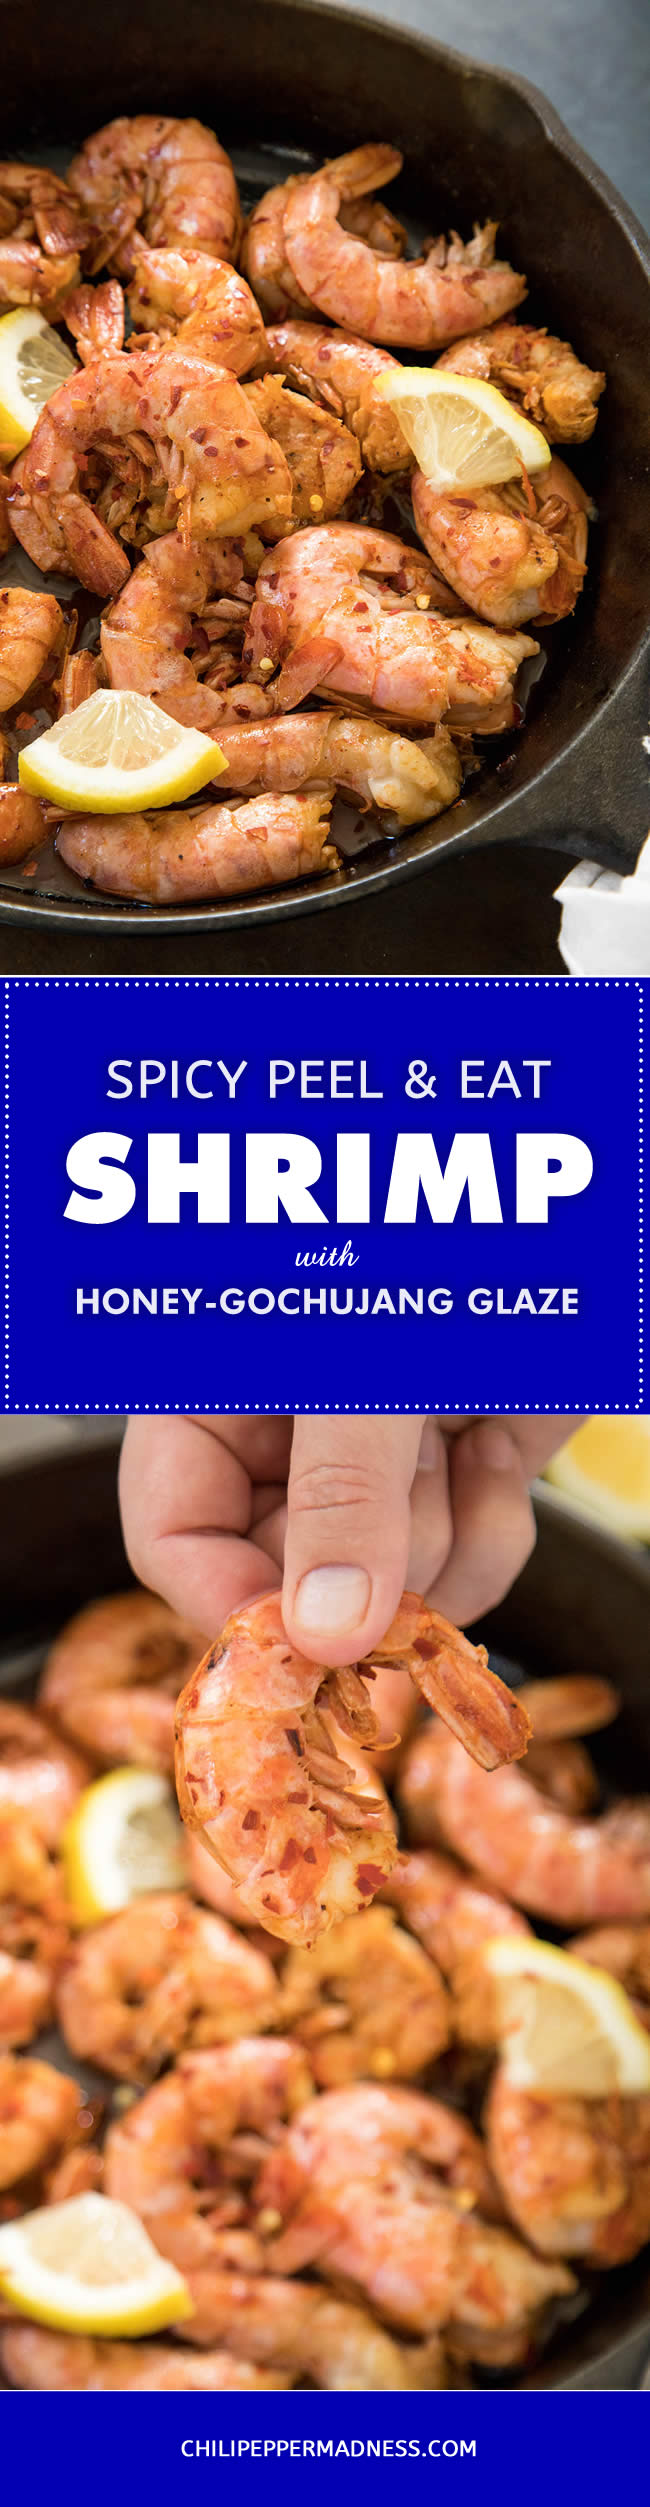 Spicy Peel-and-Eat Shrimp with Honey-Gochujang Glaze - Recipe